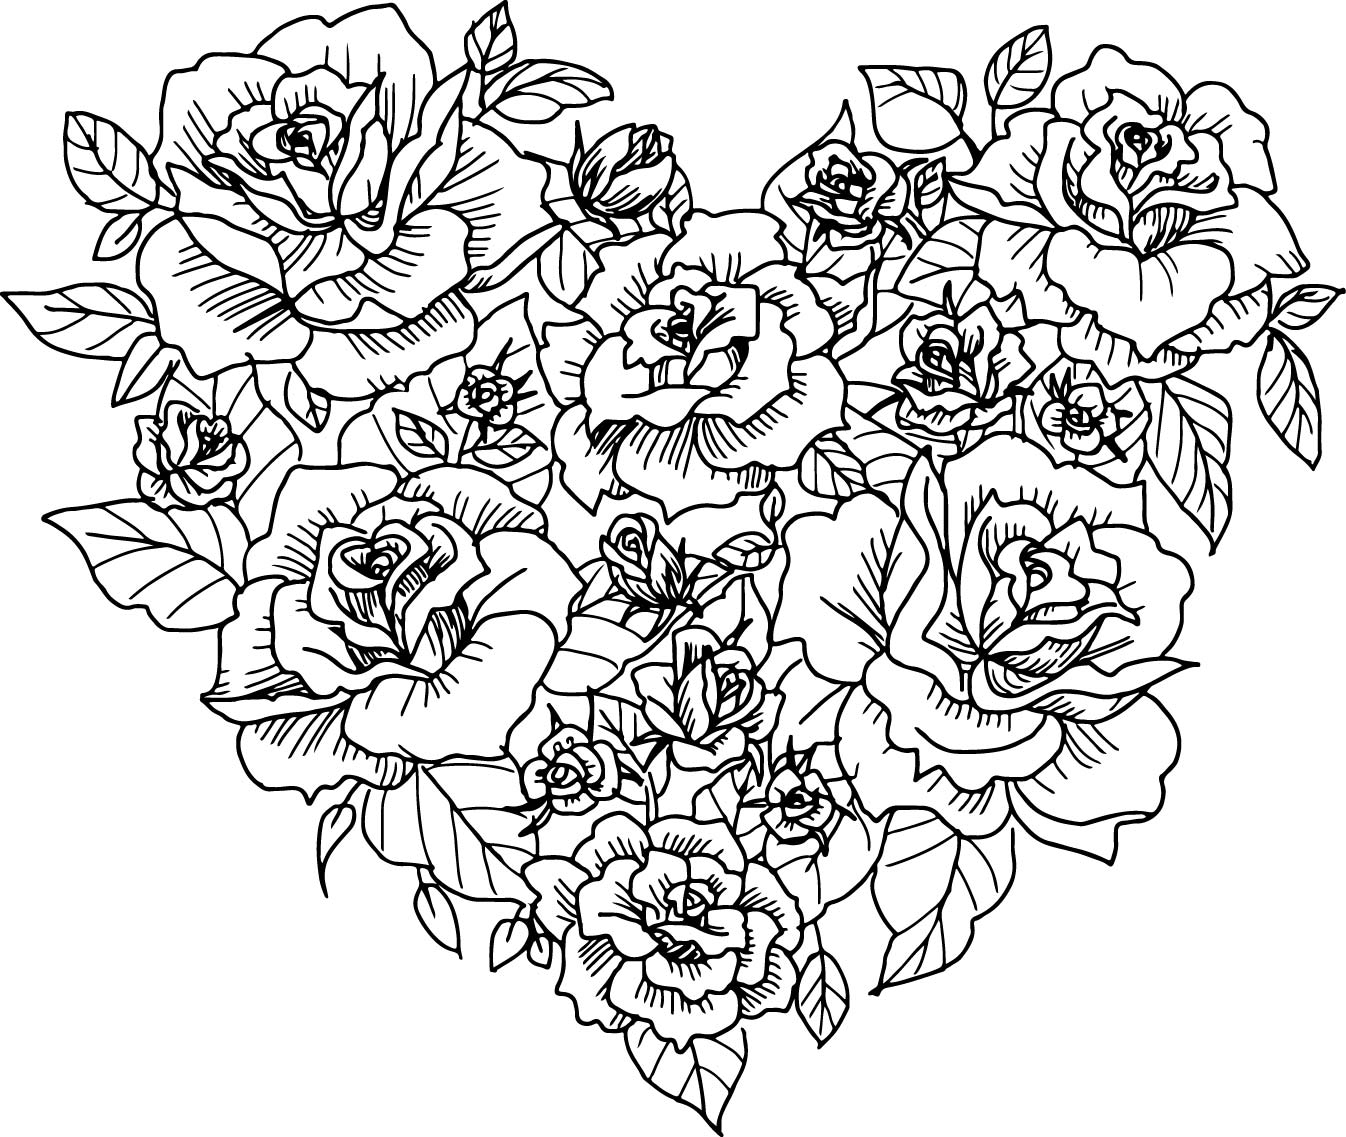 adult coloring pages roses heart rose sketch coloring page wecoloringpagecom adult coloring pages roses